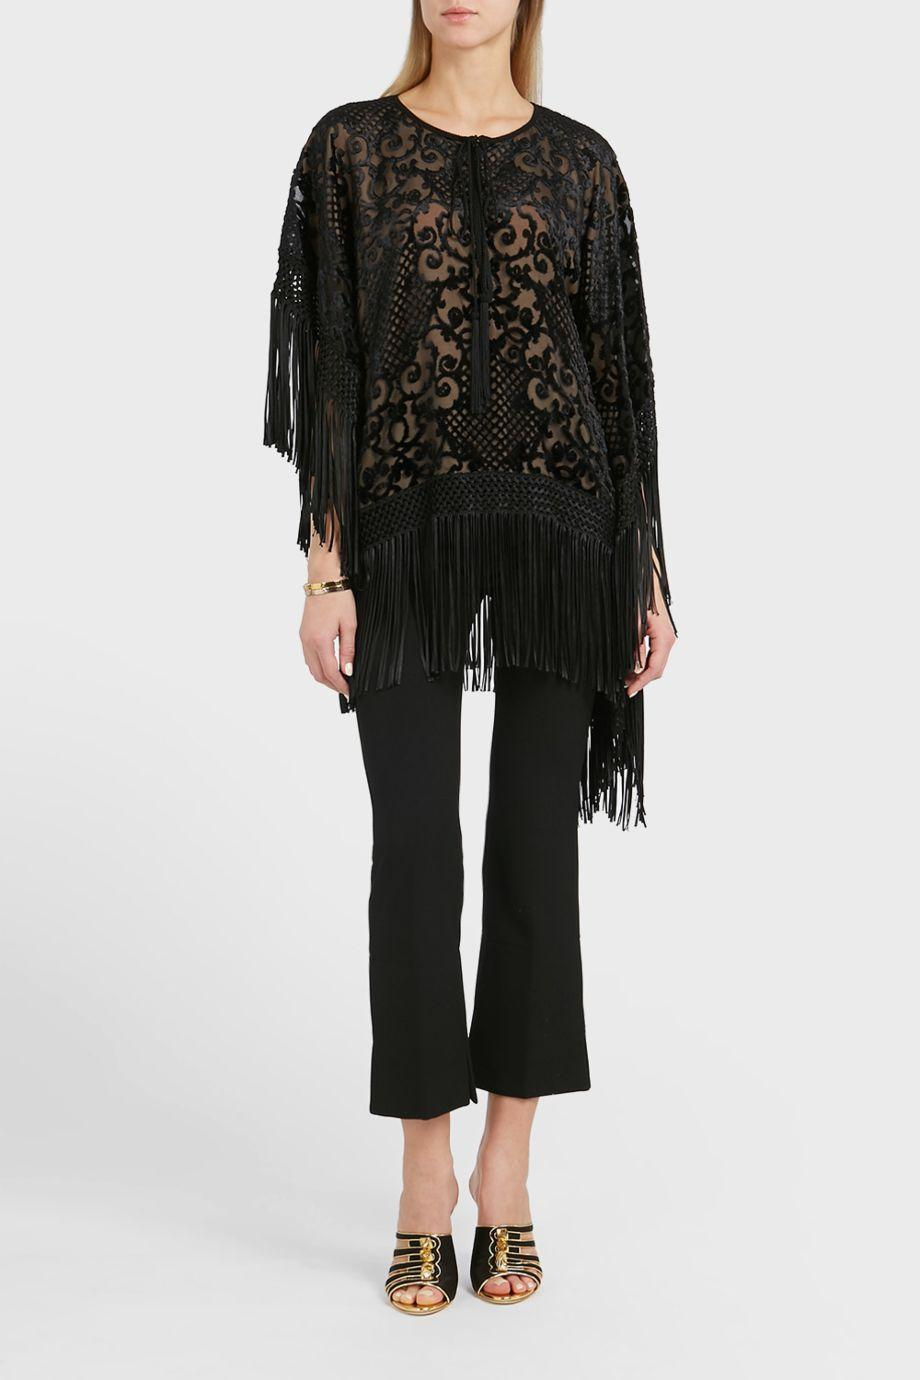 Andrew Gn Fringed Top